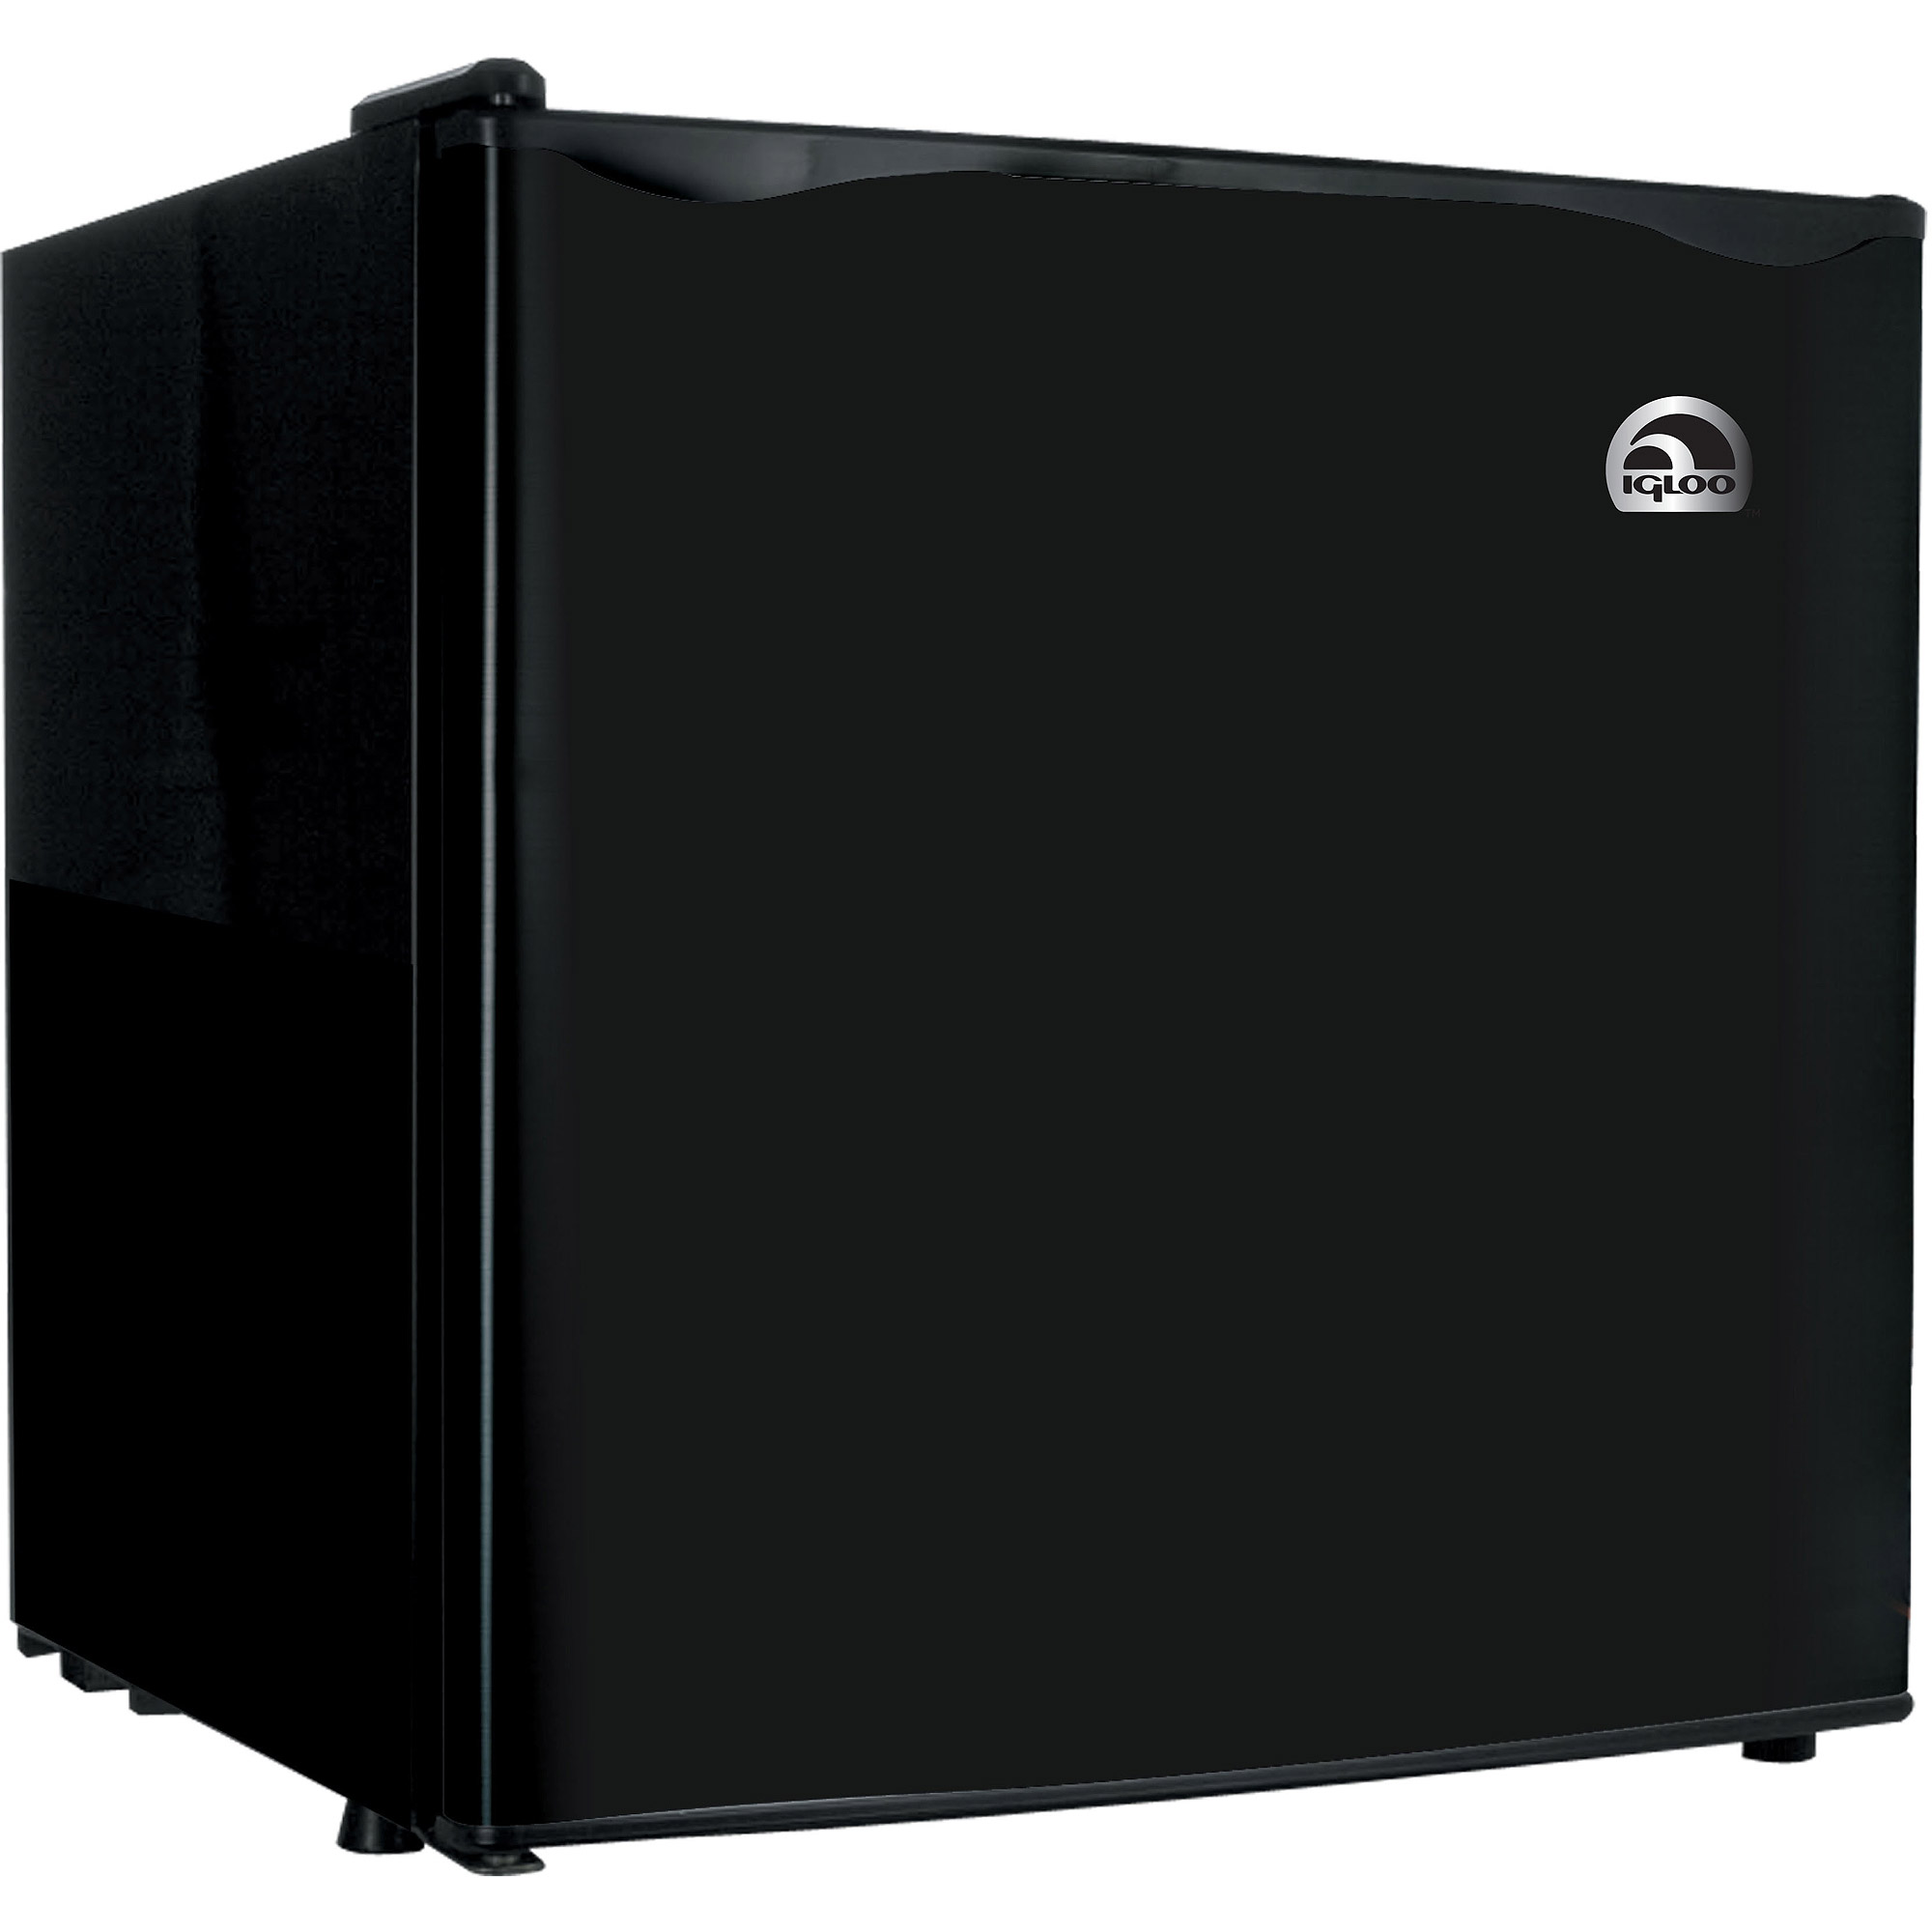 Igloo 1.6 cu ft Refrigerator and Freezer, black